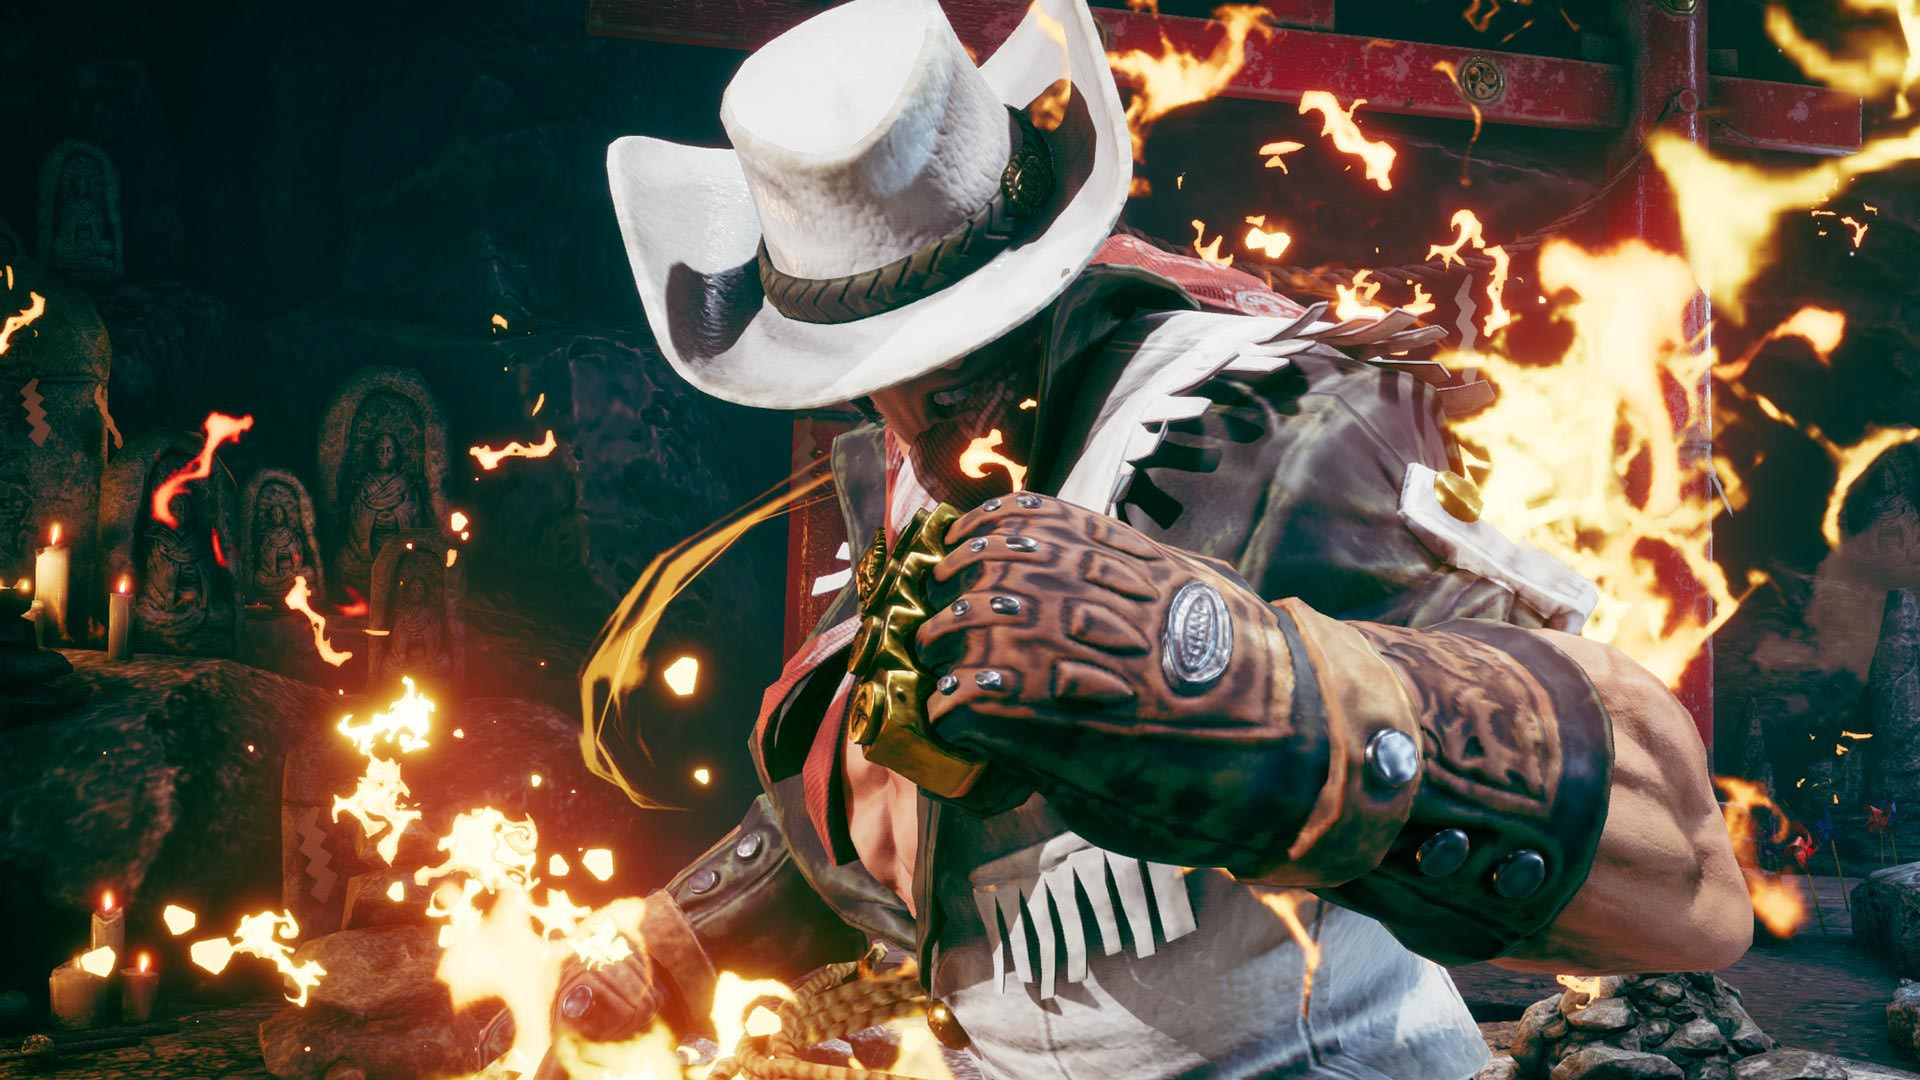 Fighting EX Layer launch screenshots 4 out of 10 image gallery